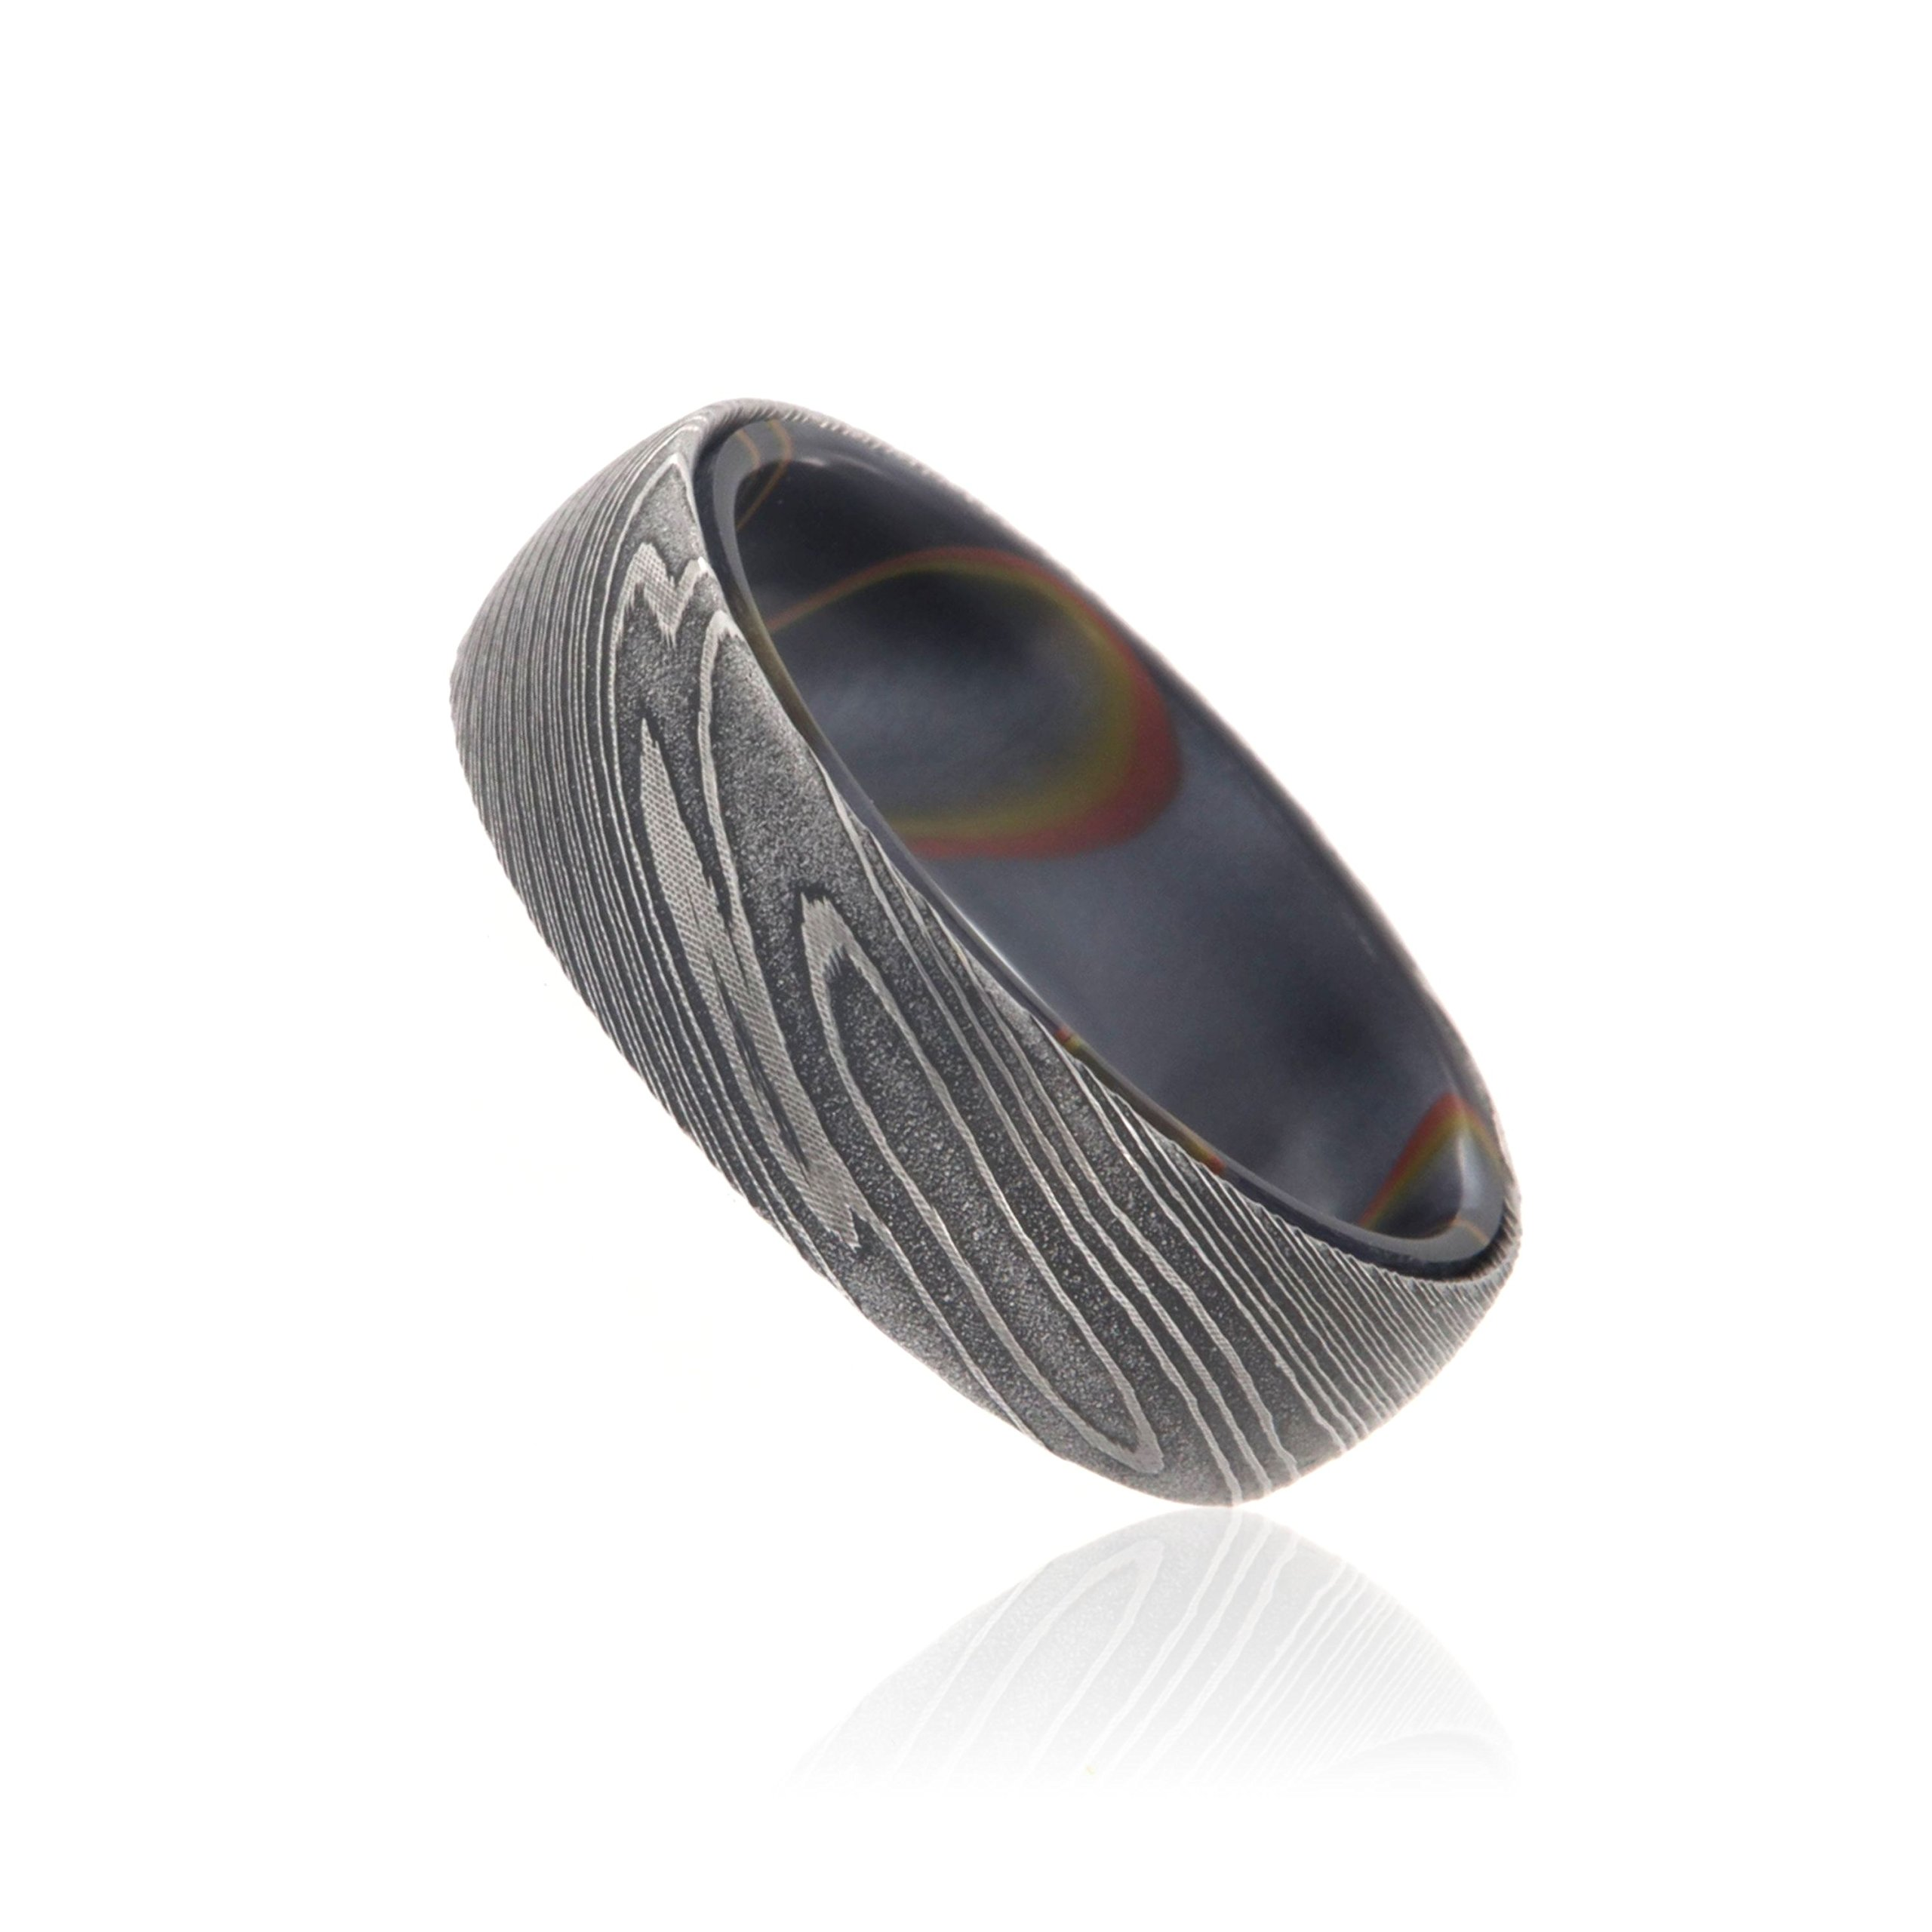 7mm Wide Damascus Steel Ring Beautifully Etched Damascus Steel Bands Wedding Rings with a Purple Resin Sport Sleeve